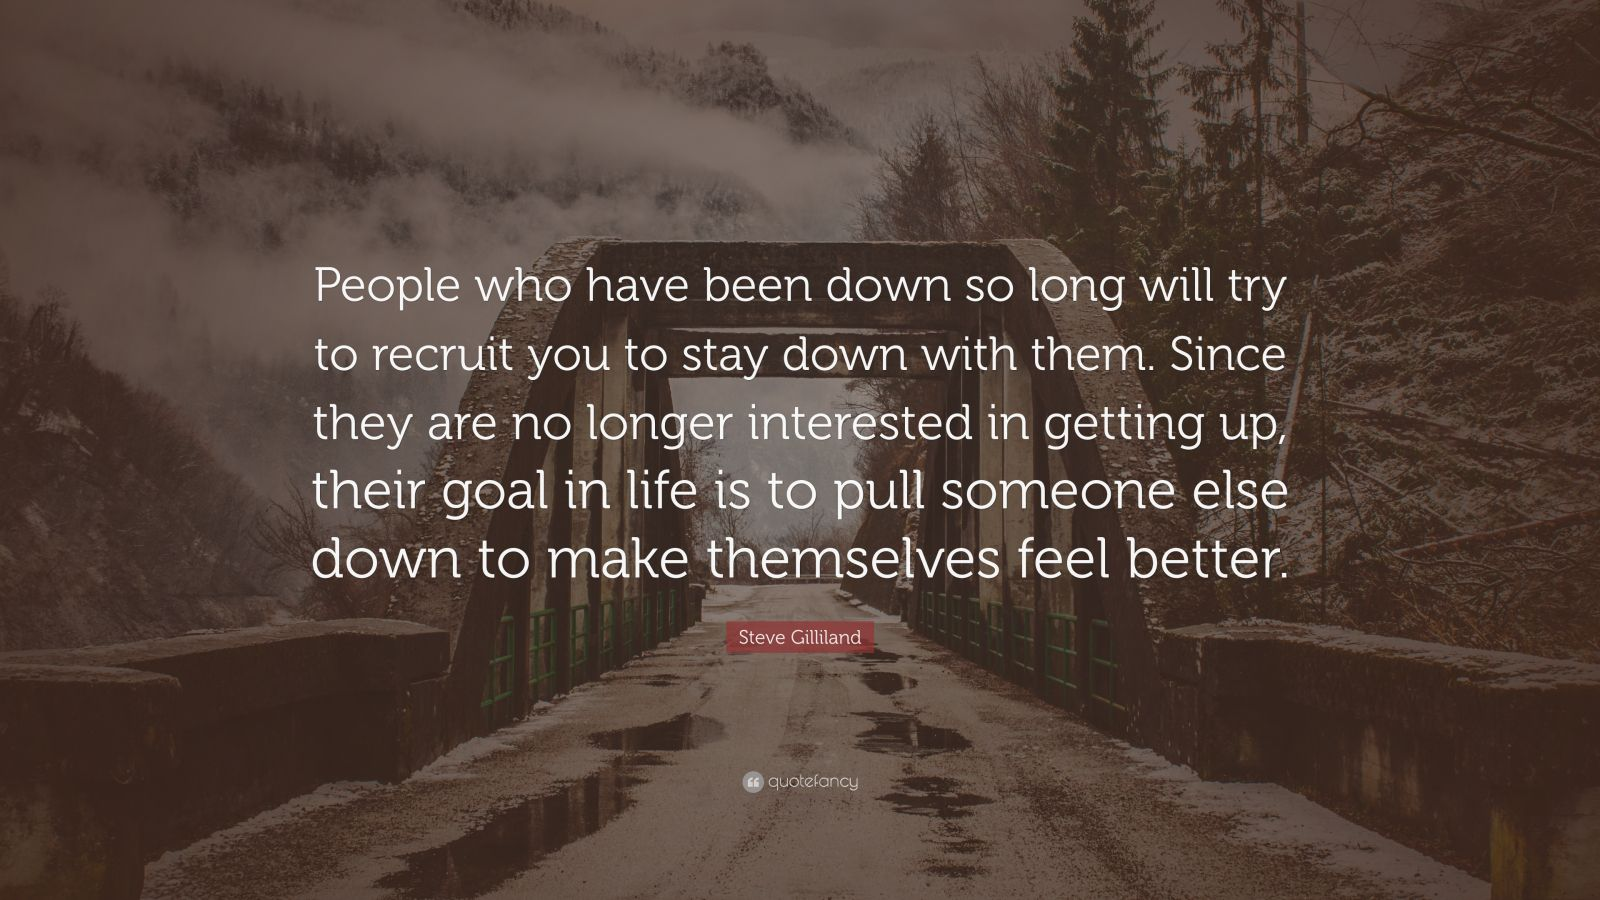 """Steve Gilliland Quote: """"People who have been down so long will try to recruit you to stay down with them. Since they are no longer interested in getting up, their goal in life is to pull someone else down to make themselves feel better."""""""